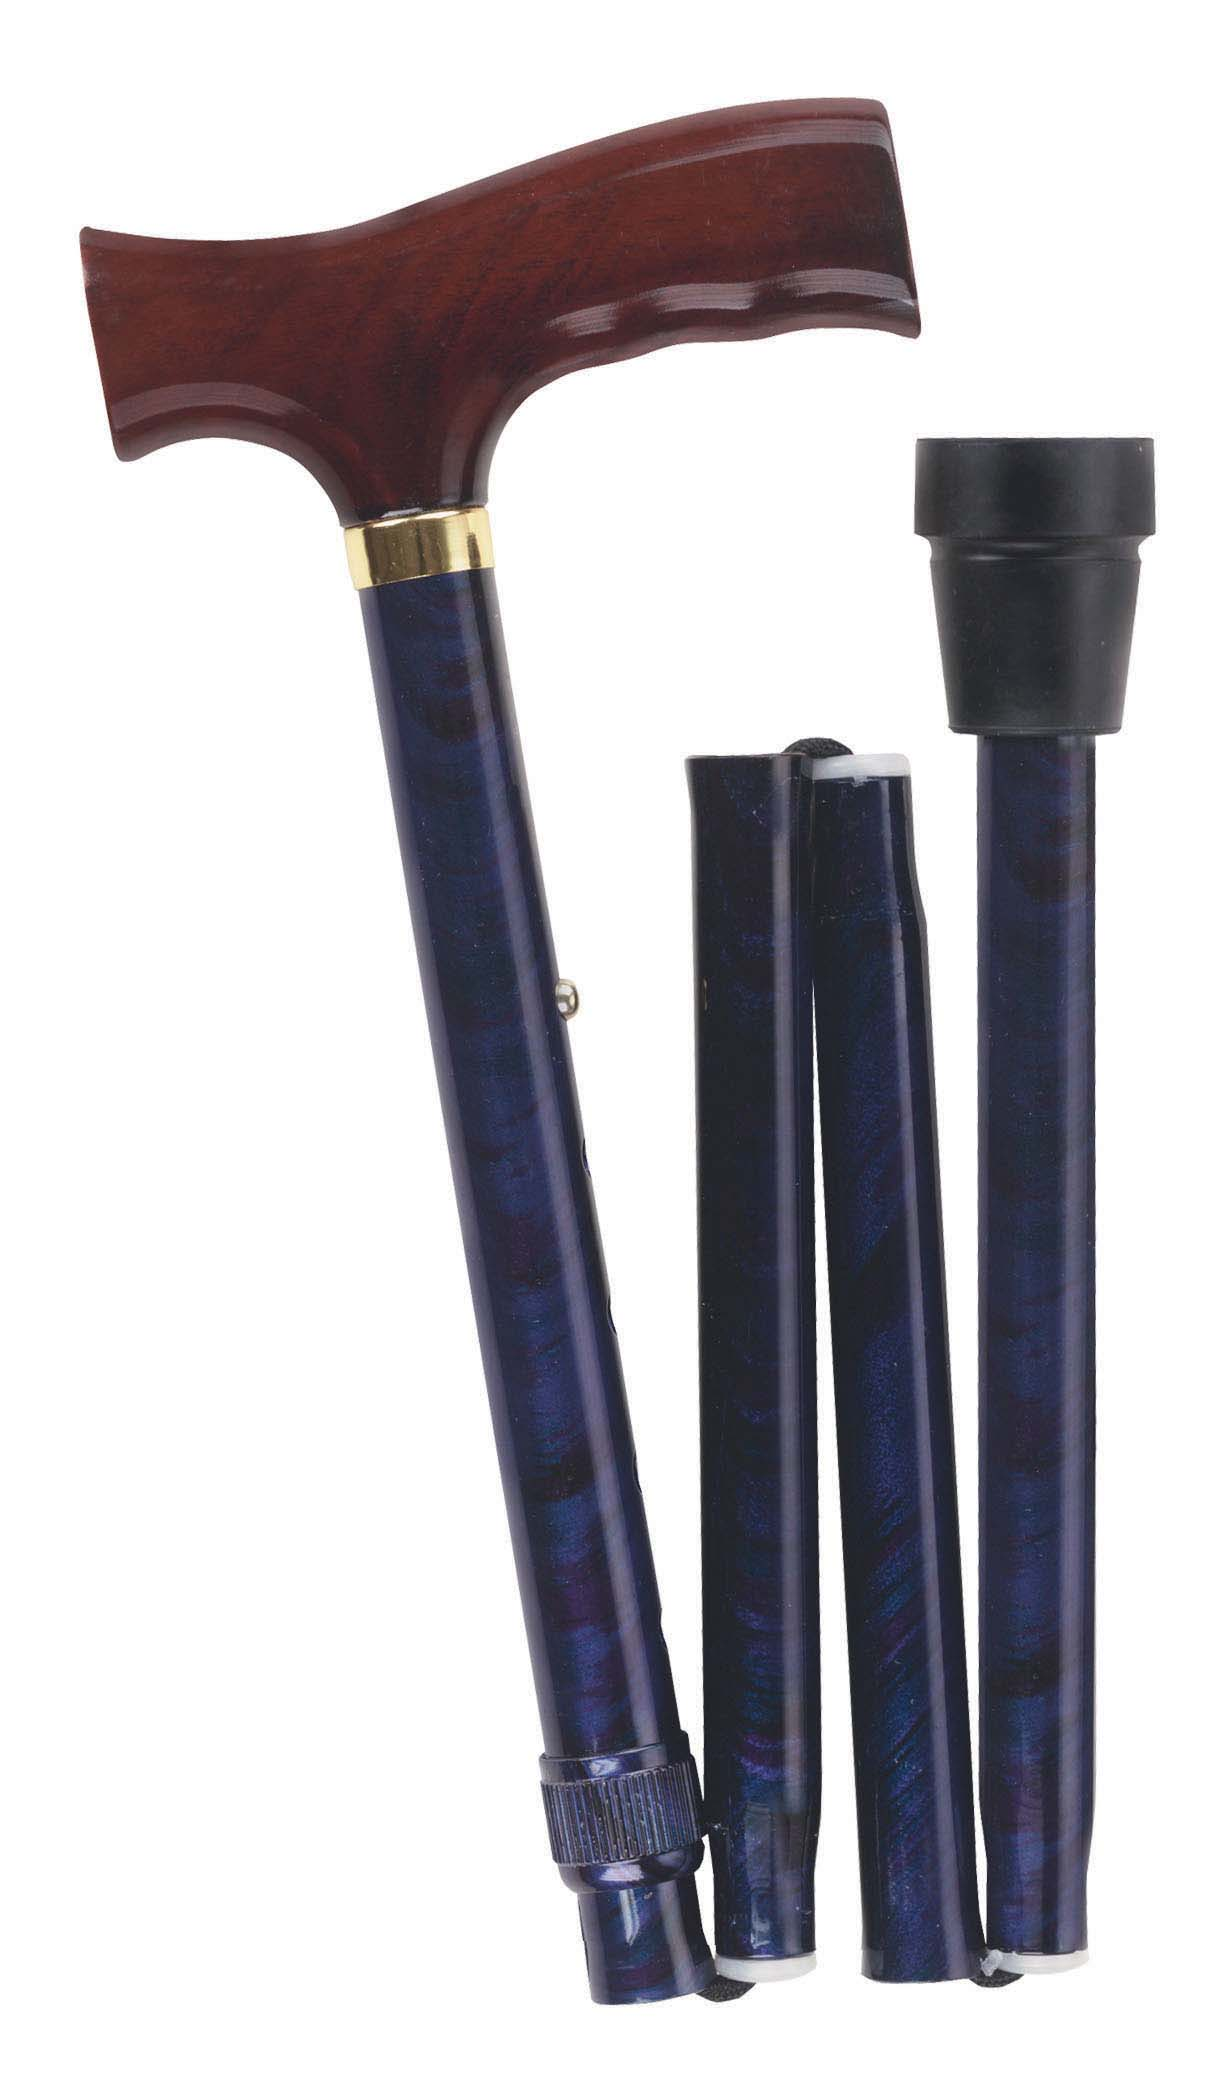 designer-folding-cane-derby-handle-cyclone-blue-502-1325-0100-lr.jpg